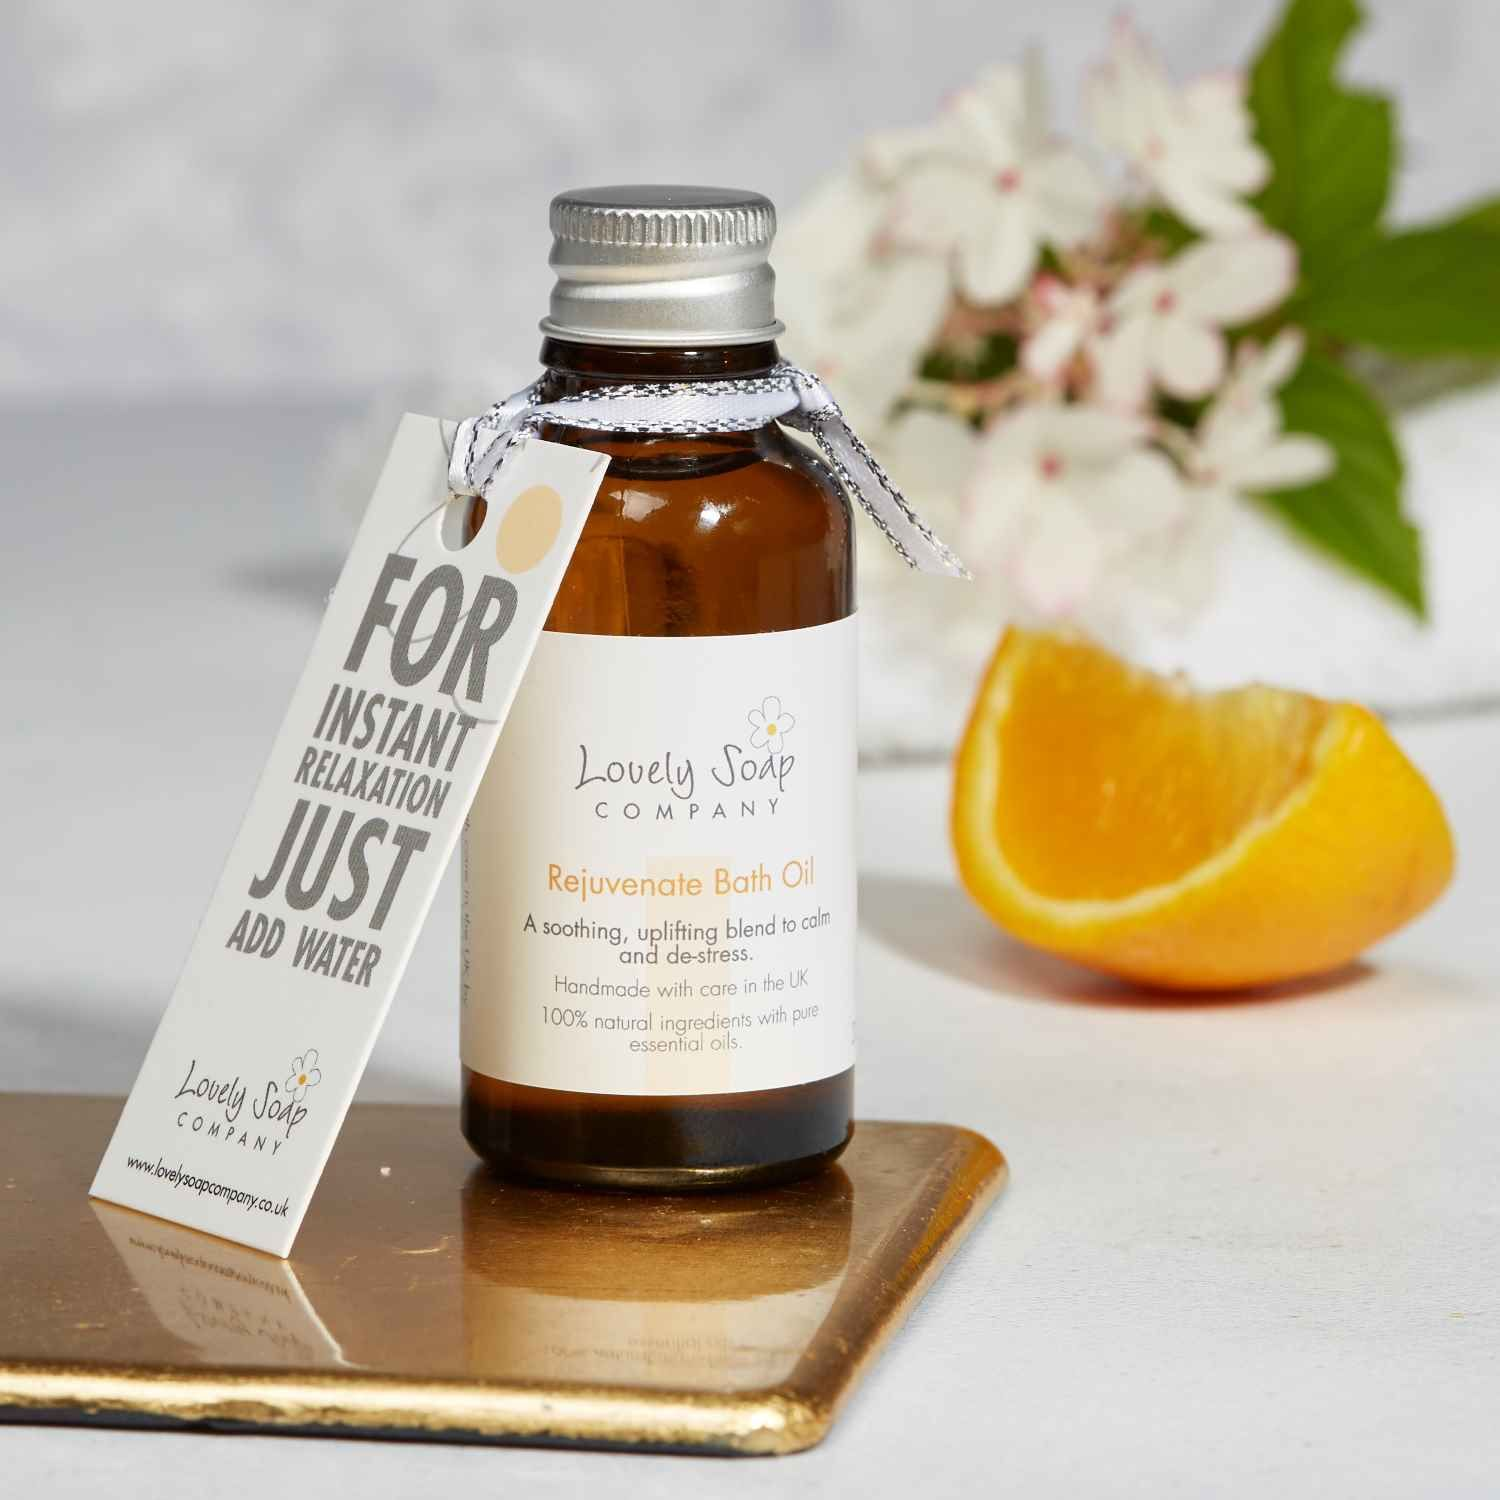 Thinking of You personalised pamper gift by Lovely Soap Co